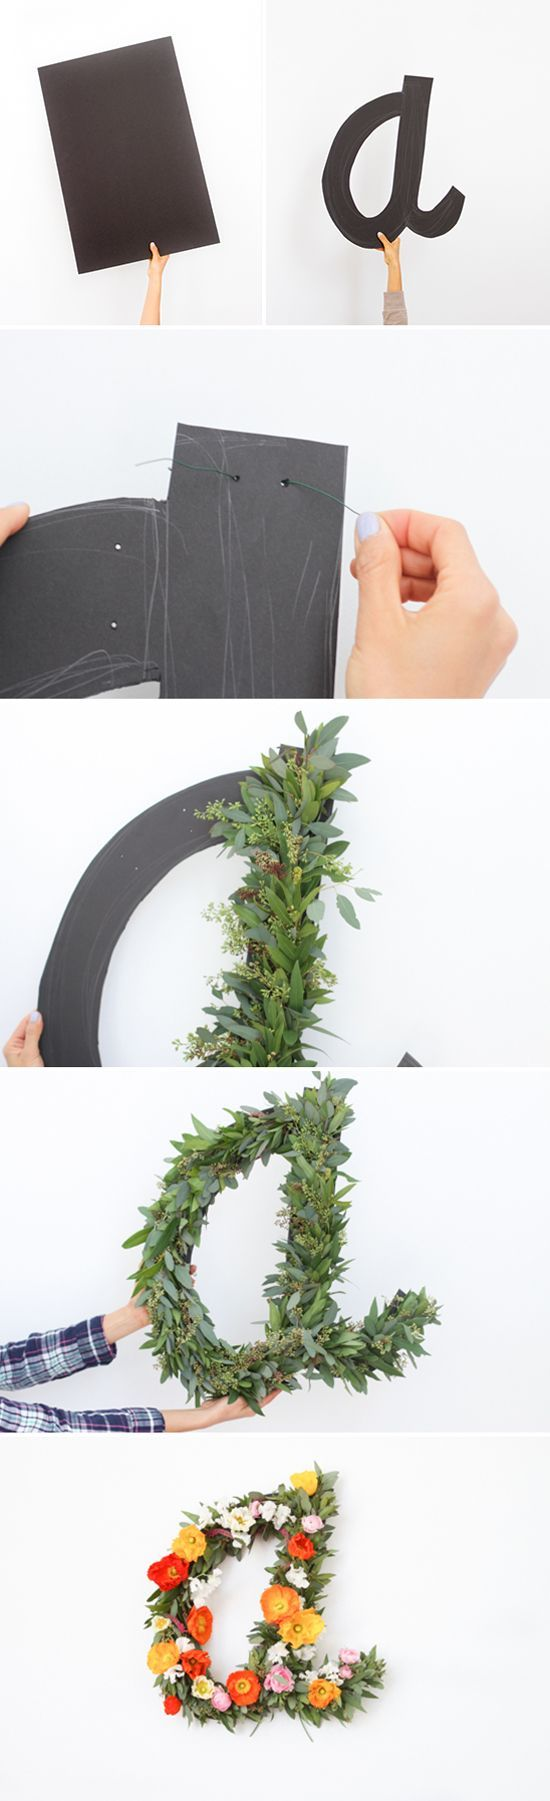 how-to-make-giant-typography-wall-art-with-flowers